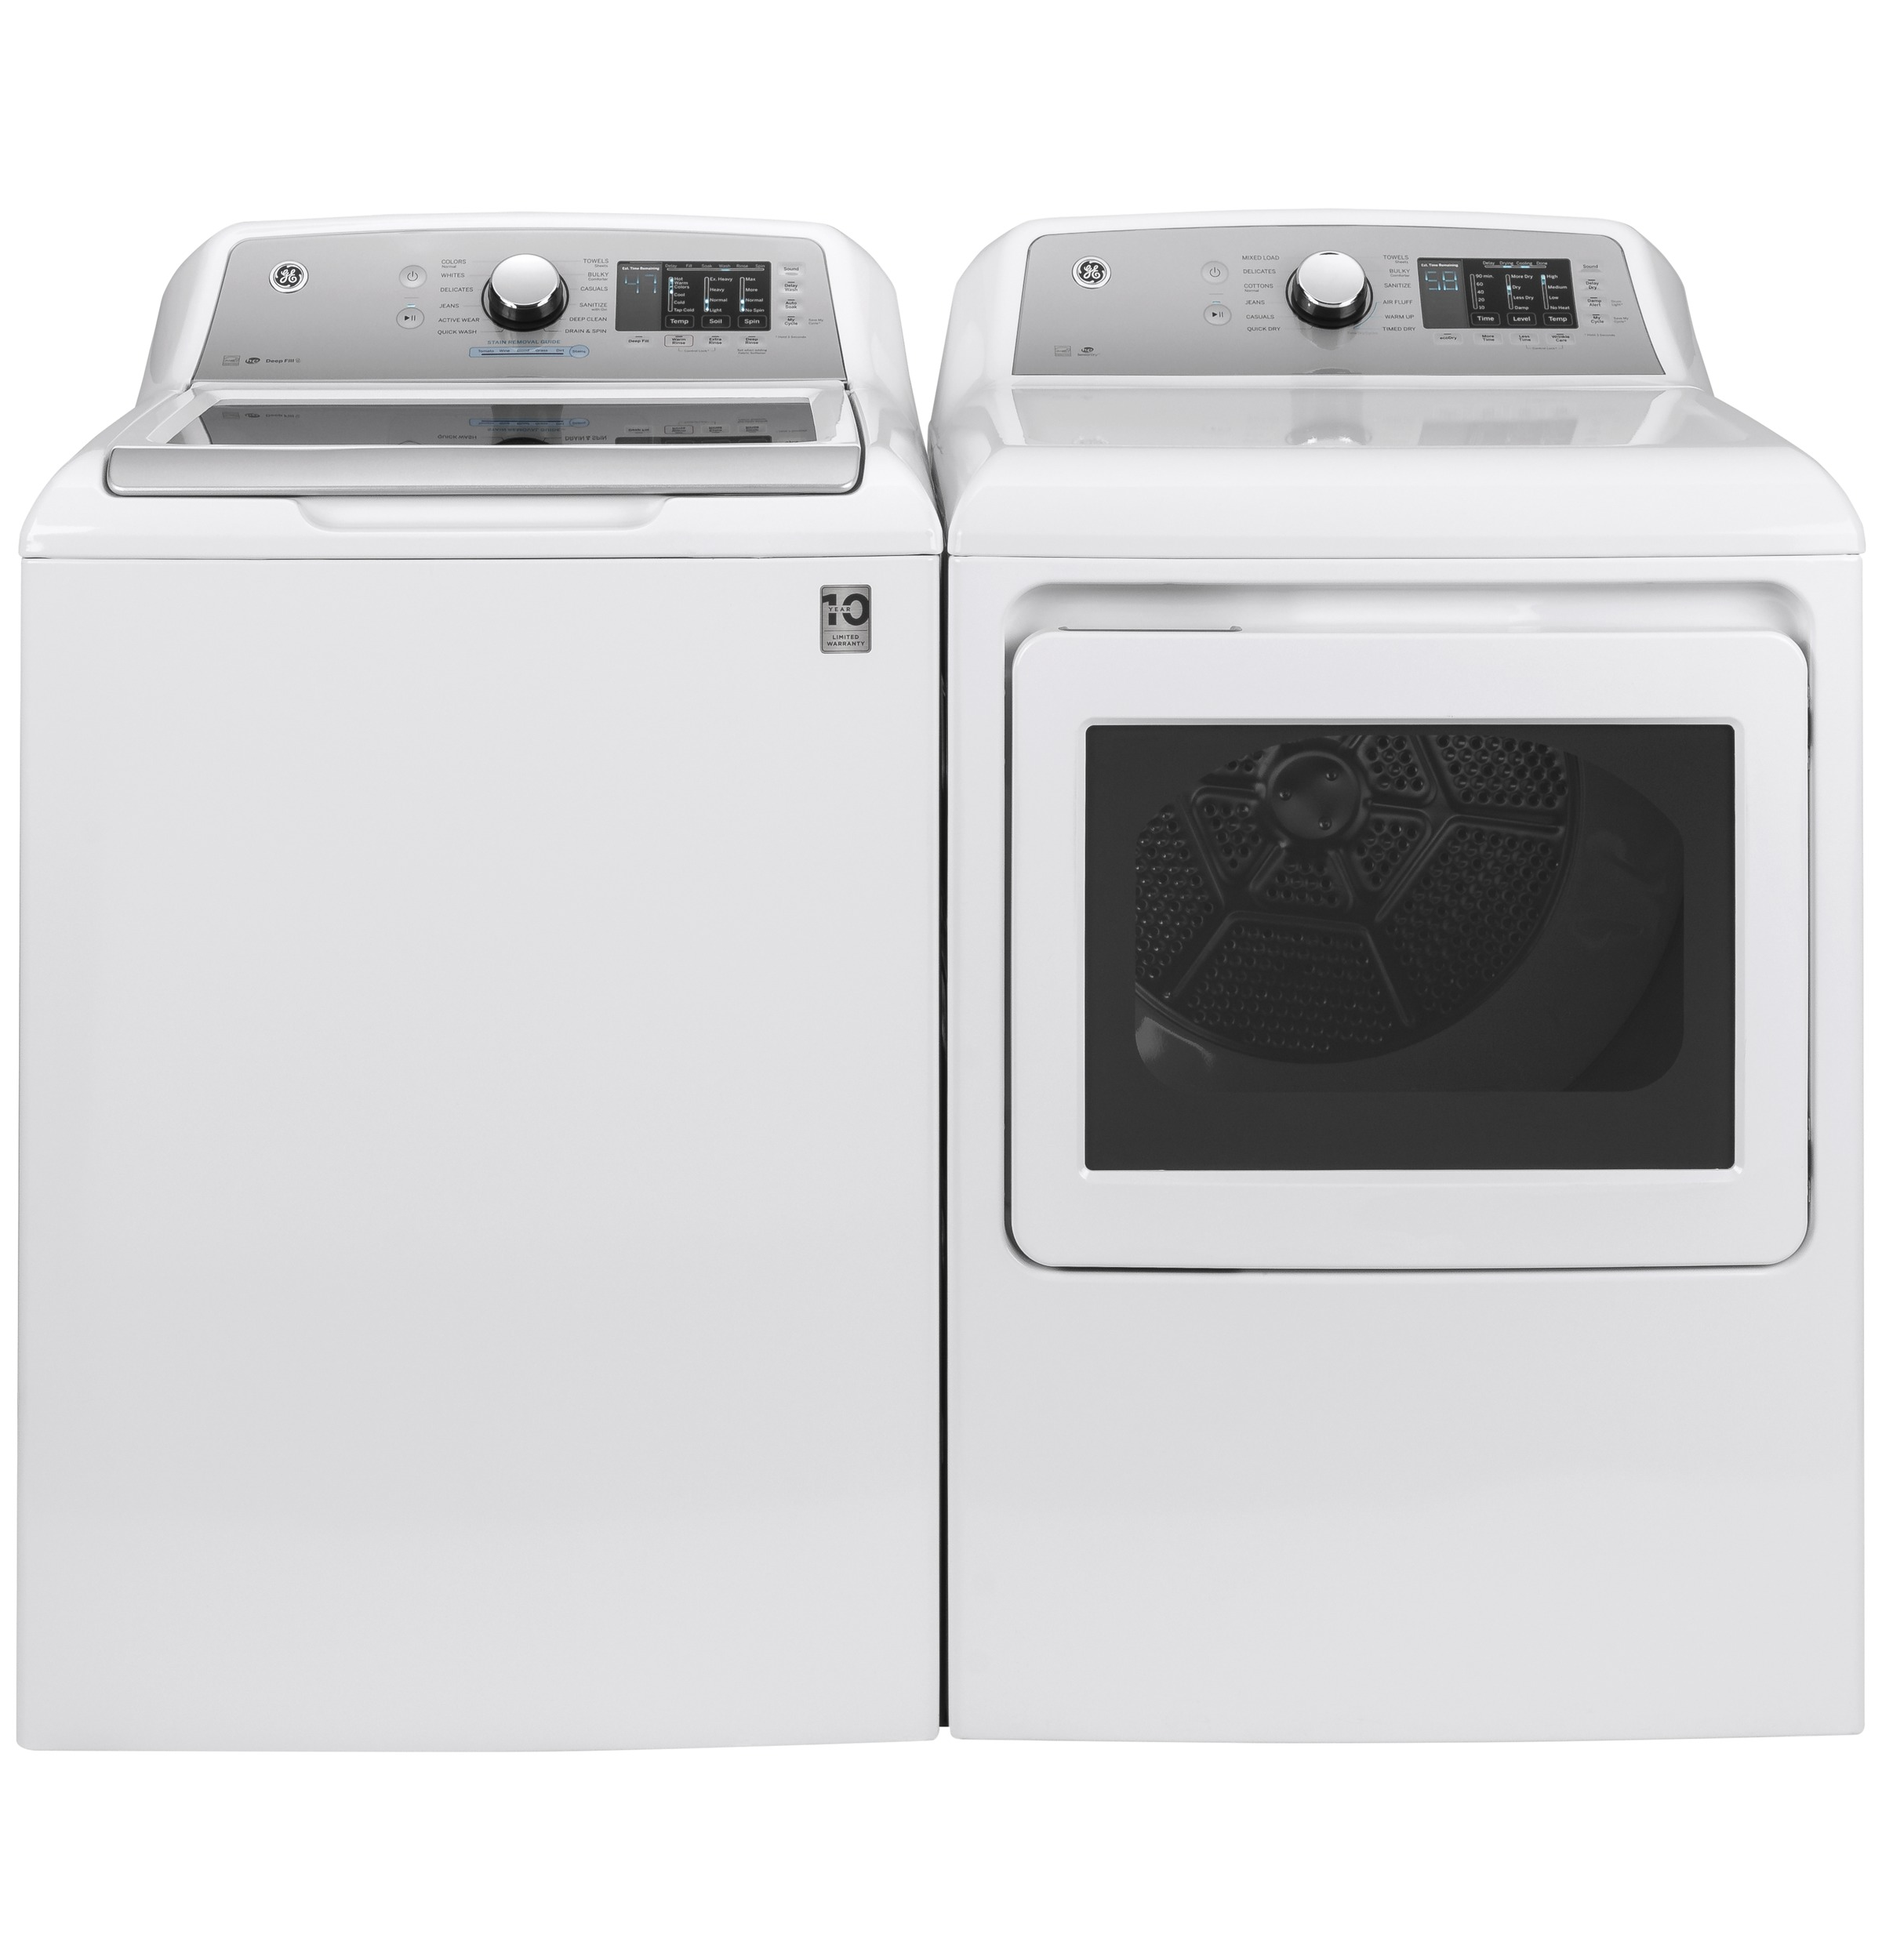 Model: GTW720BSNWS | GE GE® 4.8  cu. ft. Capacity Washer with Sanitize w/Oxi and FlexDispense™